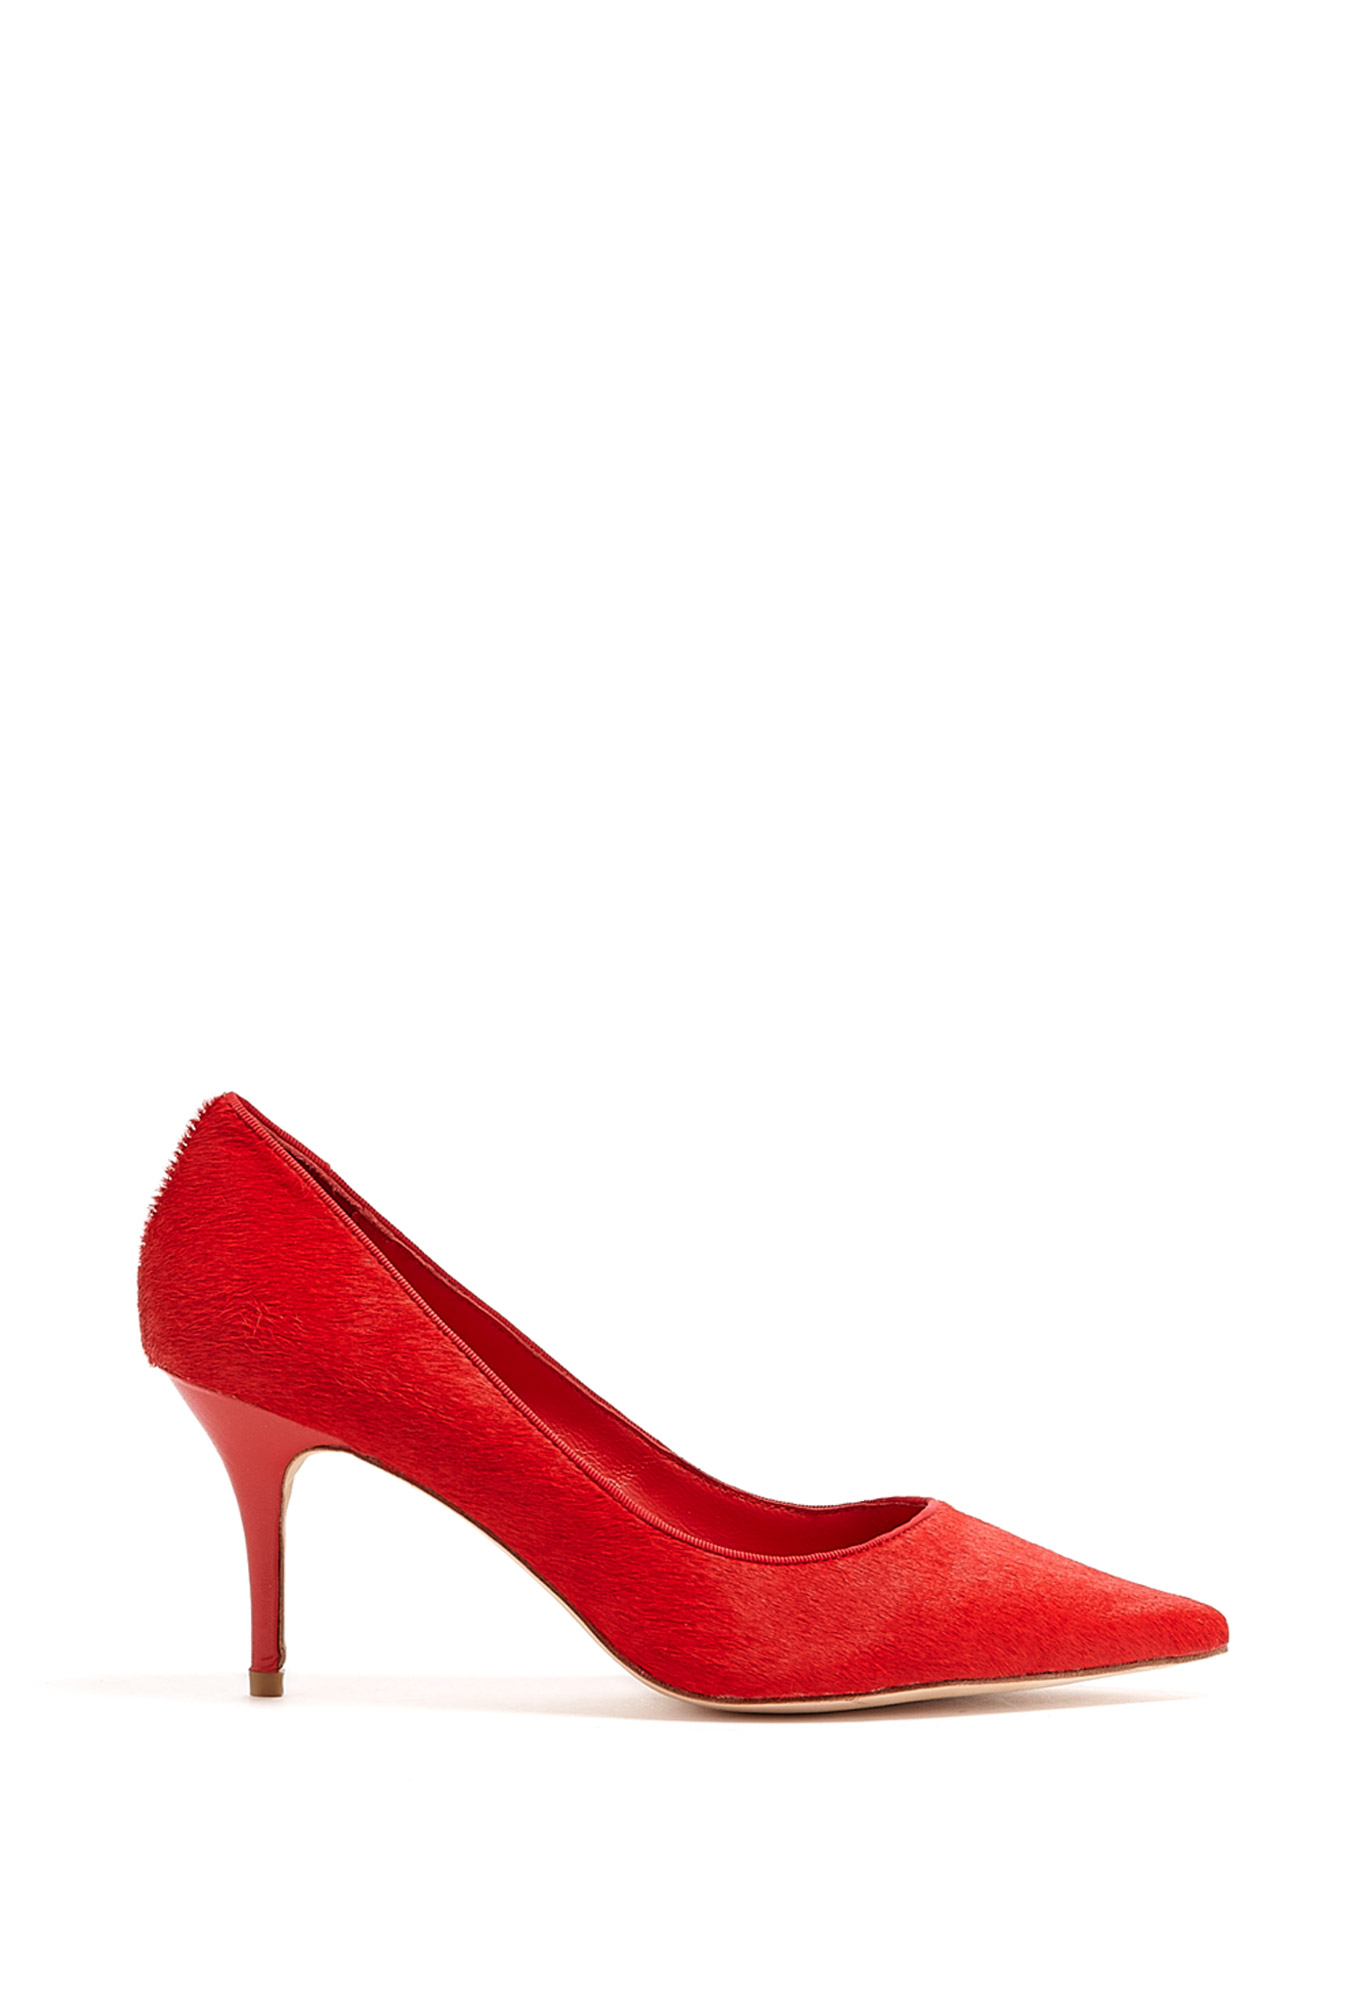 Red Mid Heel Shoes with FREE Shipping & Exchanges, and a % price guarantee. Choose from a huge selection of Red Mid Heel Shoes styles.